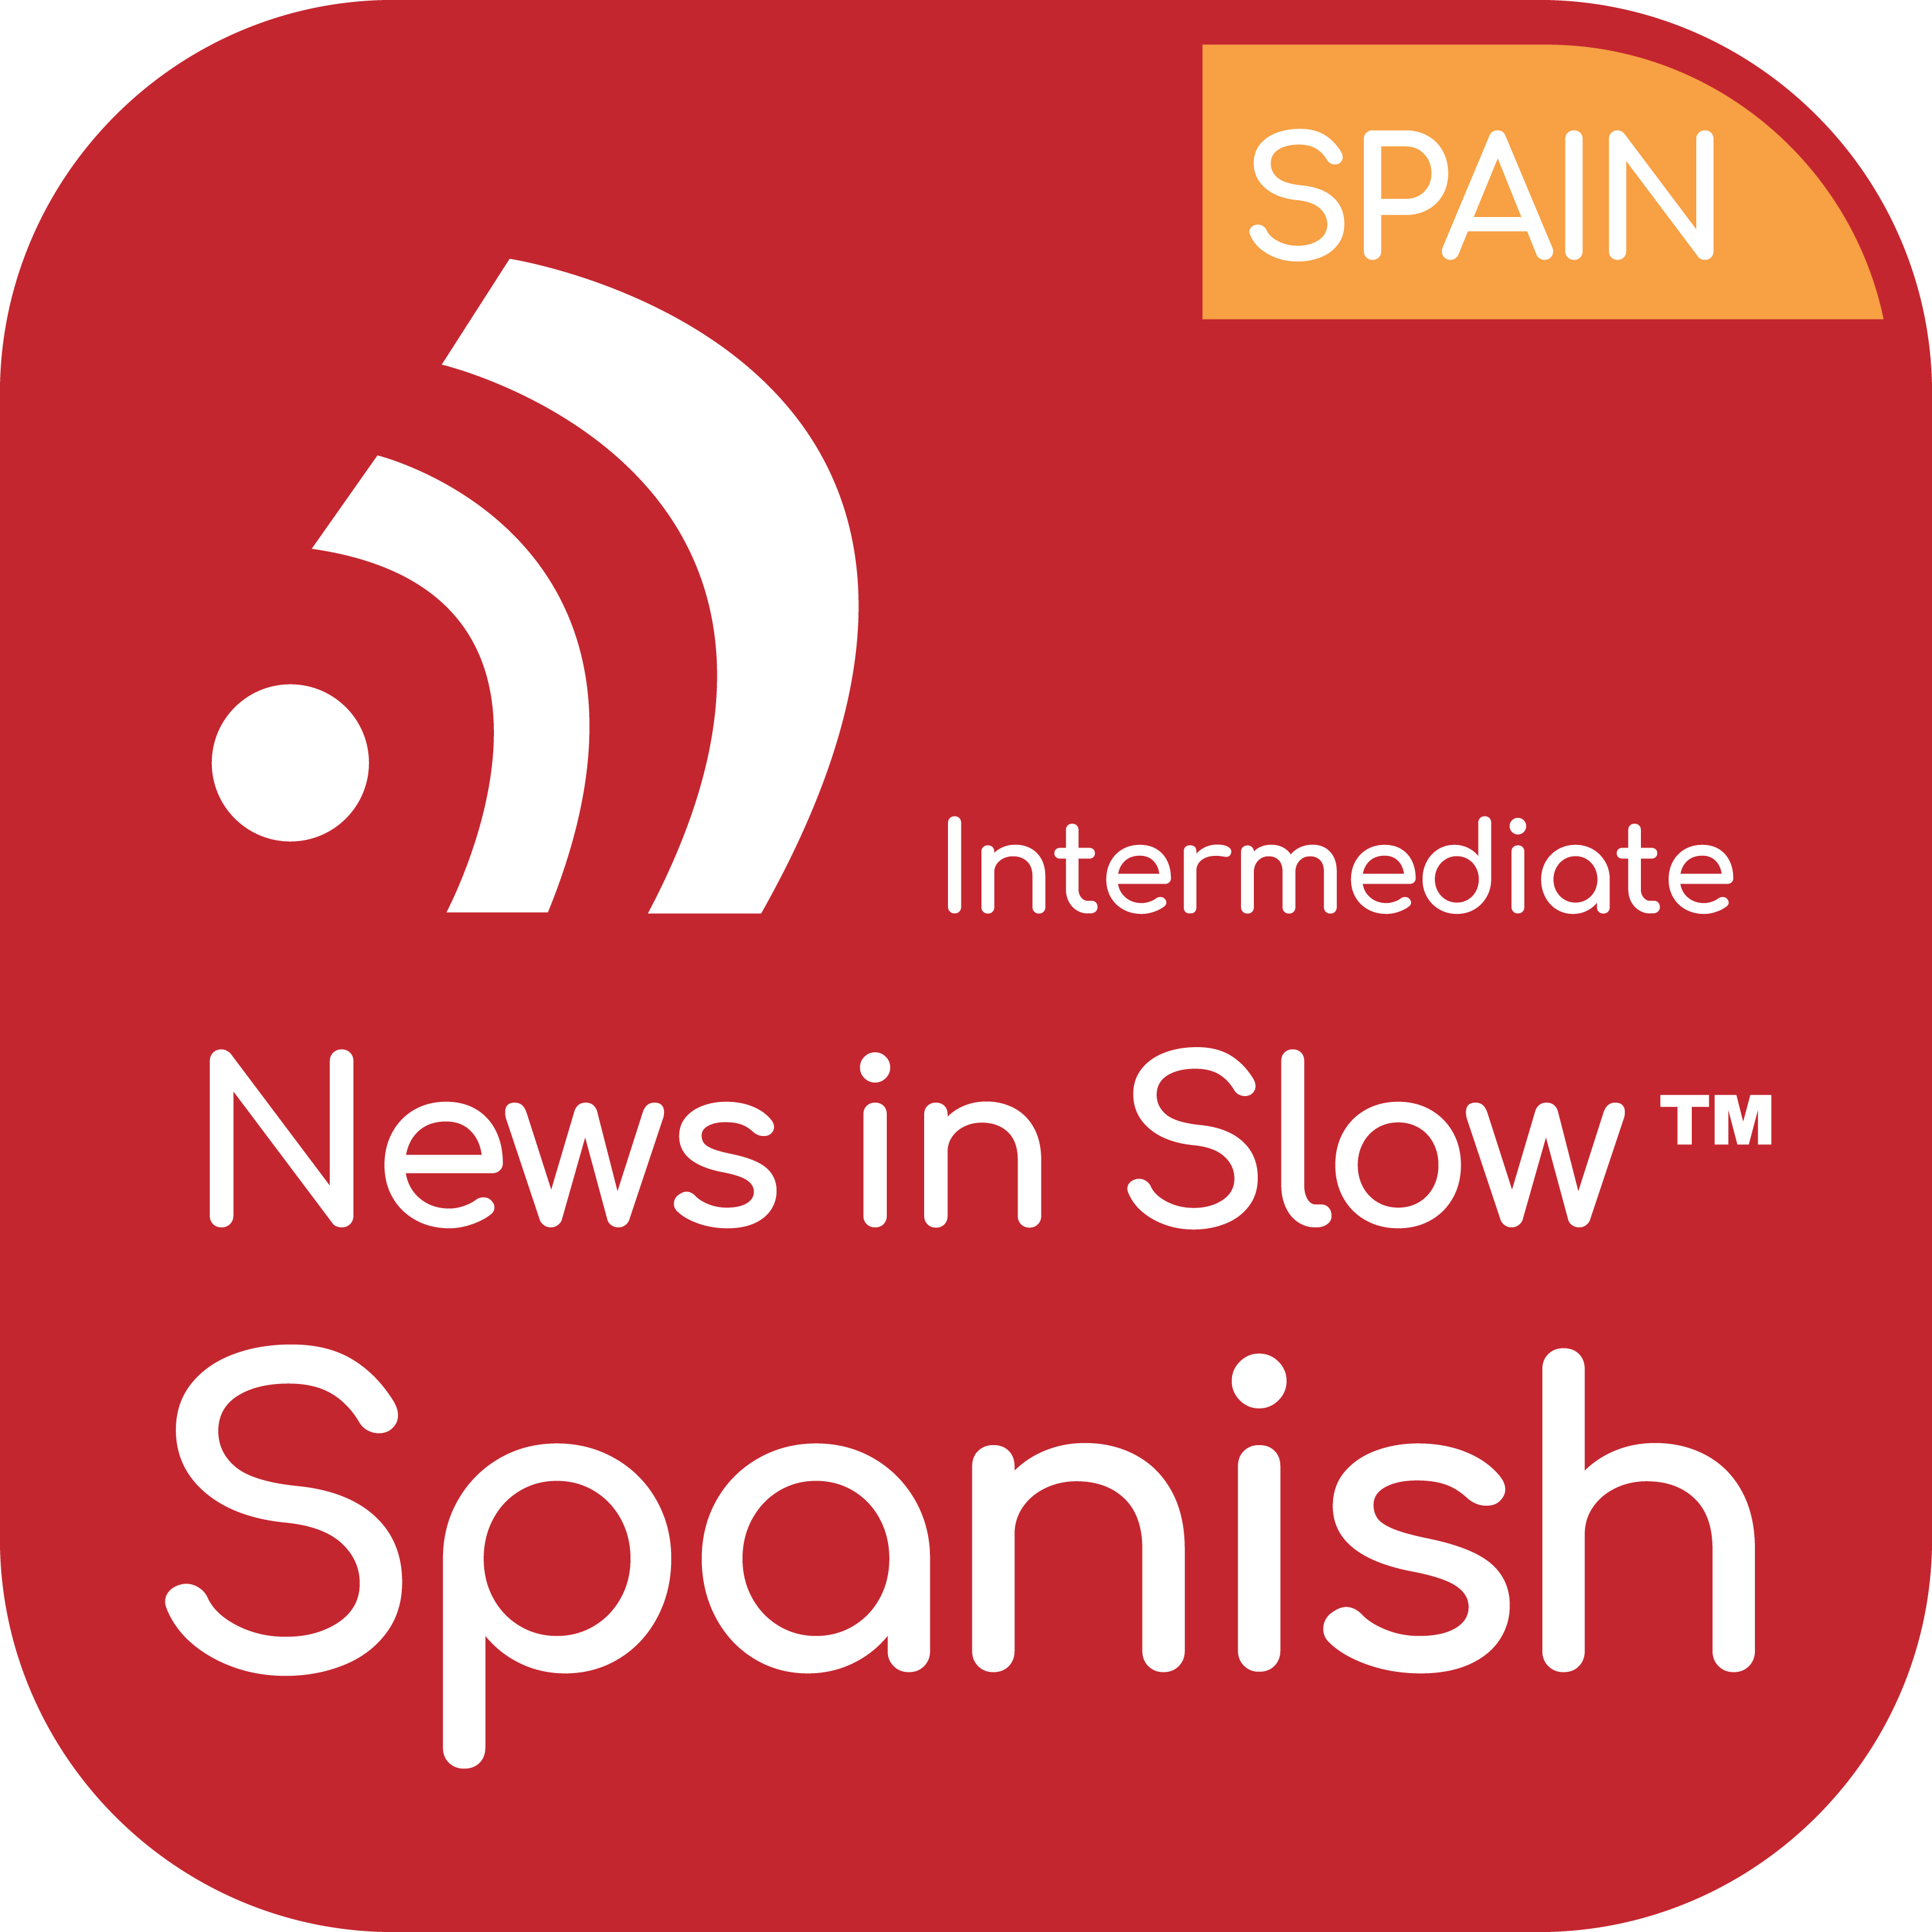 News in Slow Spanish - #638 - Learn Spanish through Current Events